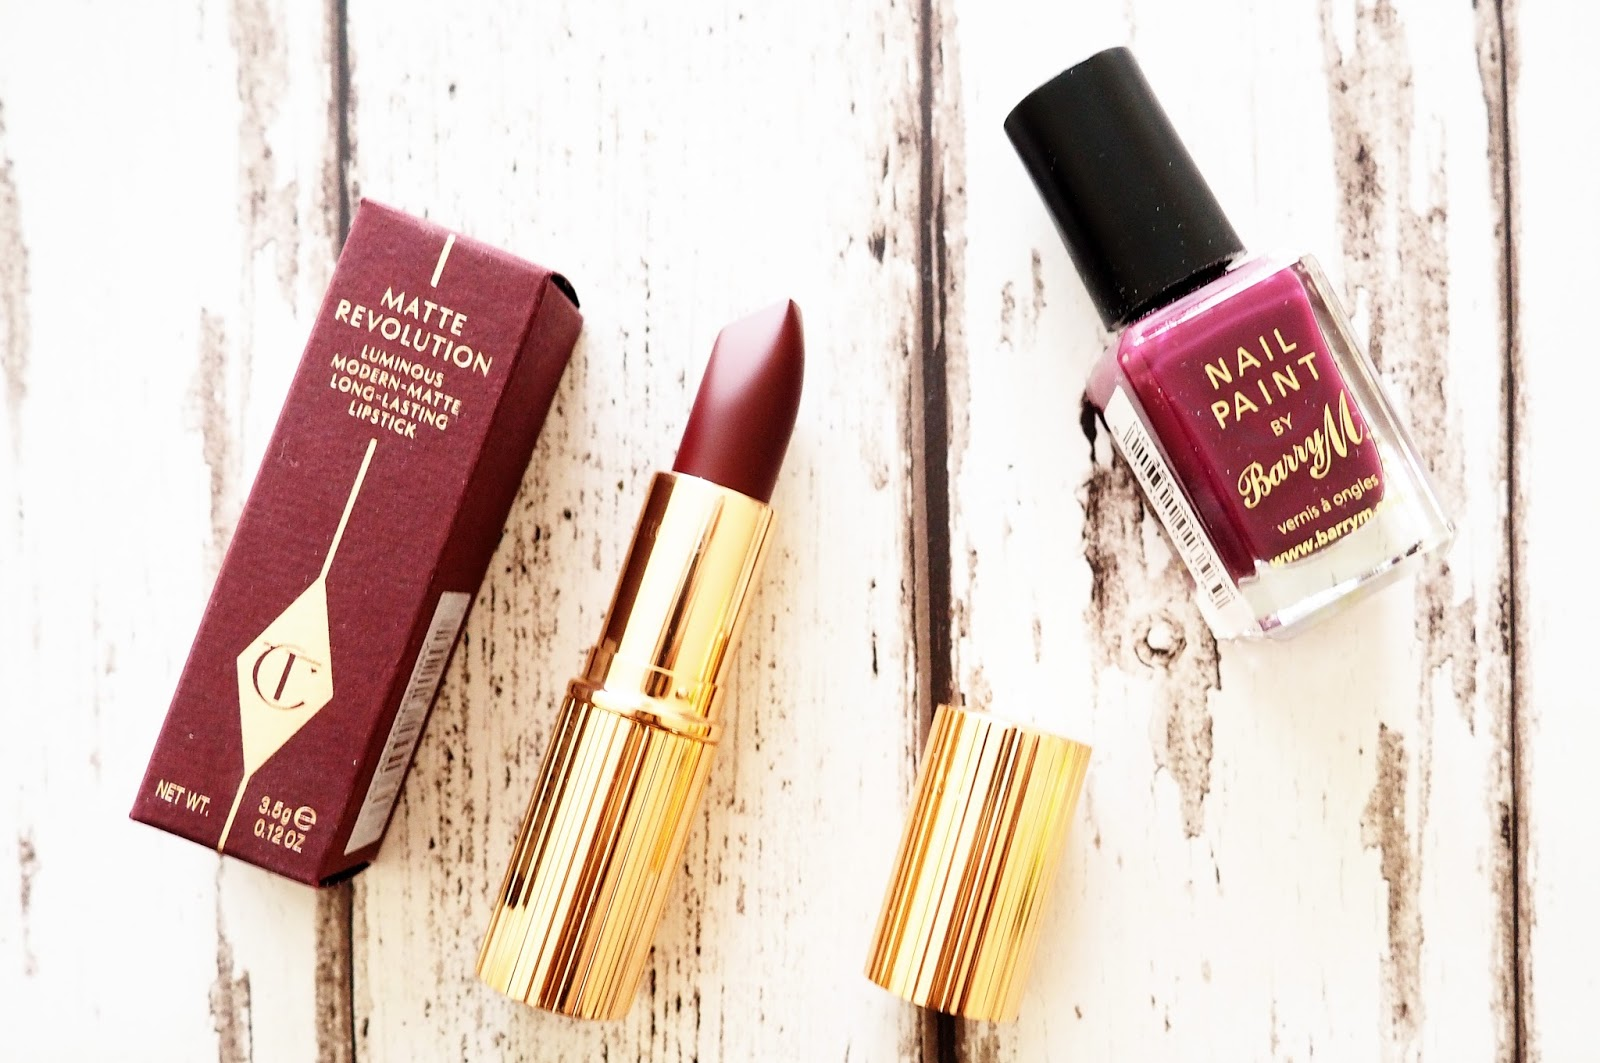 Charlotte Tilbury Lipstick Glastonberry Giveaway